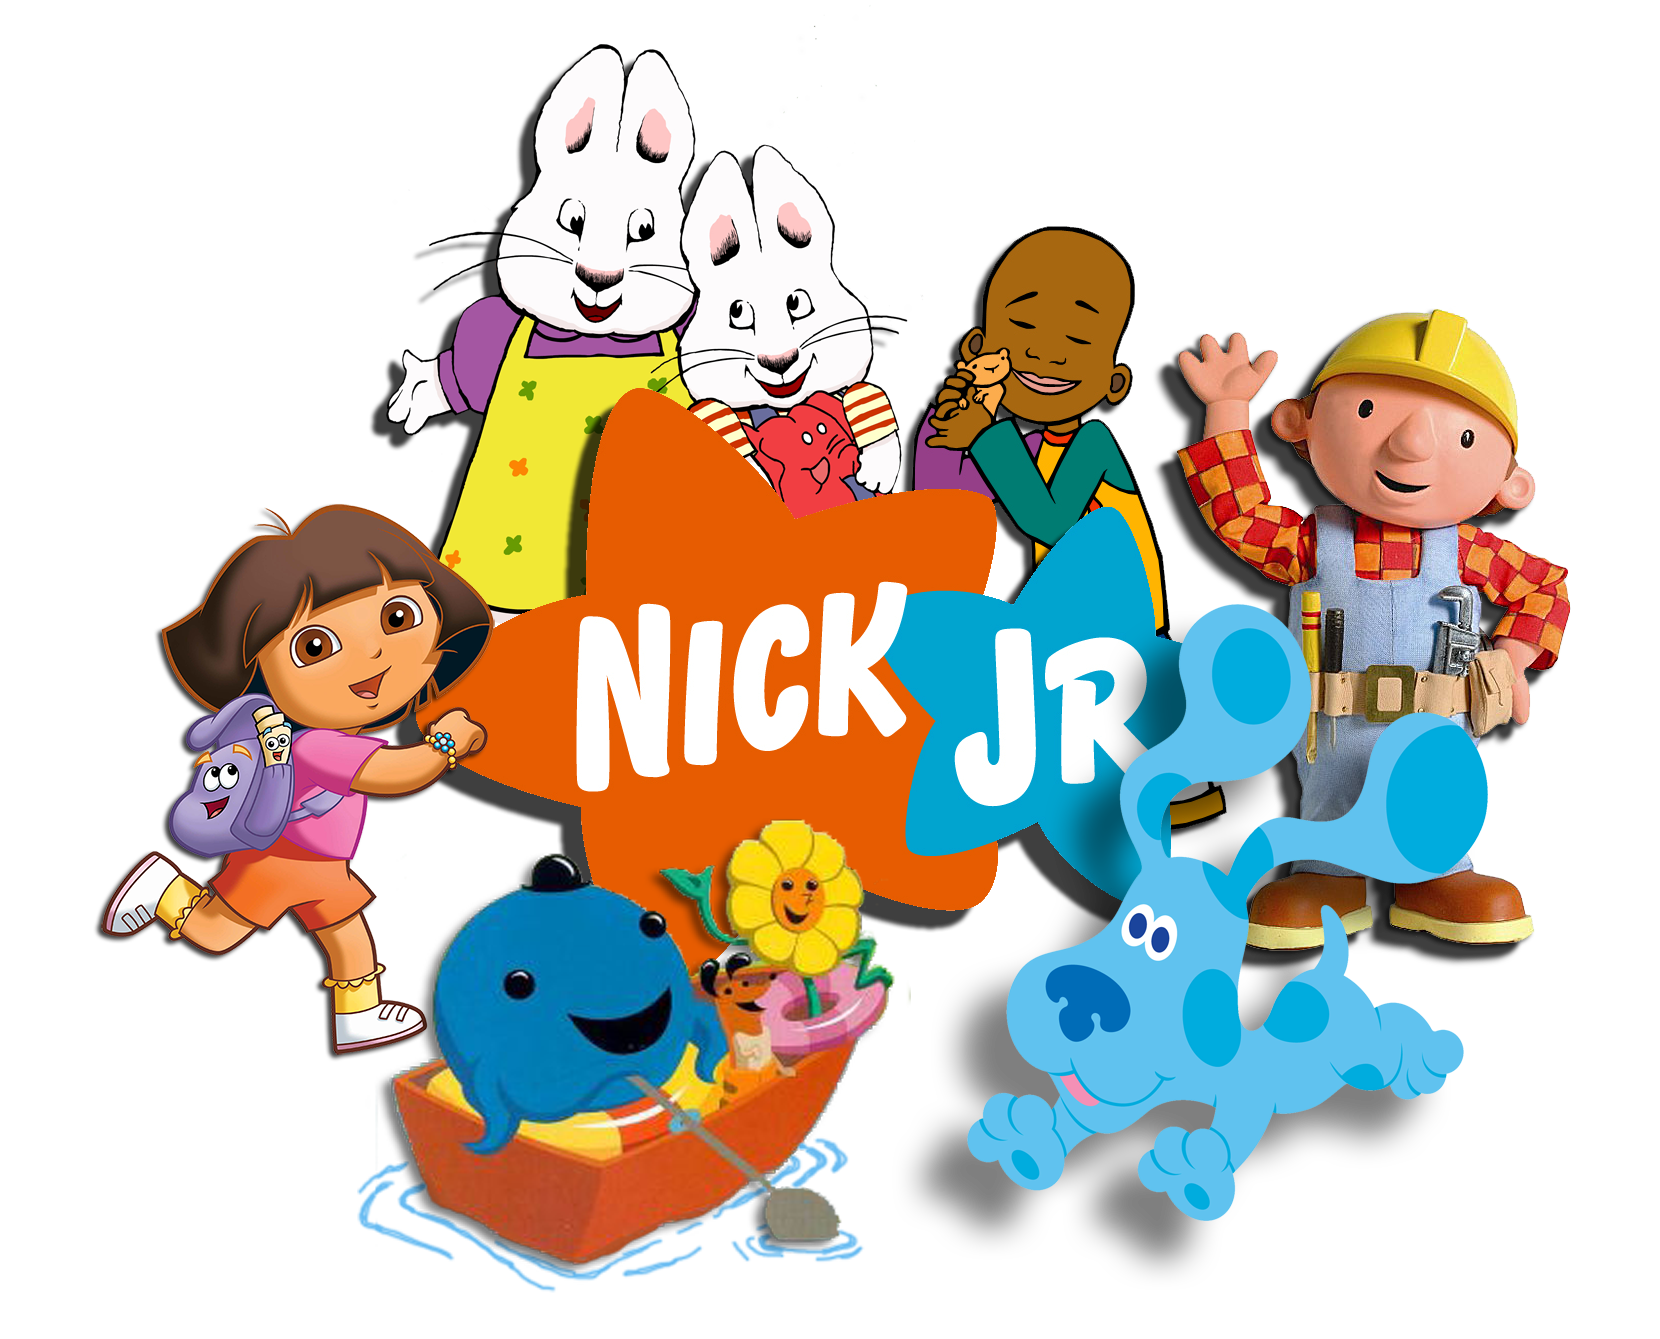 nick jr logo with Max and Ruby, Little Bill, Bob the Builder, Dora the Explorer